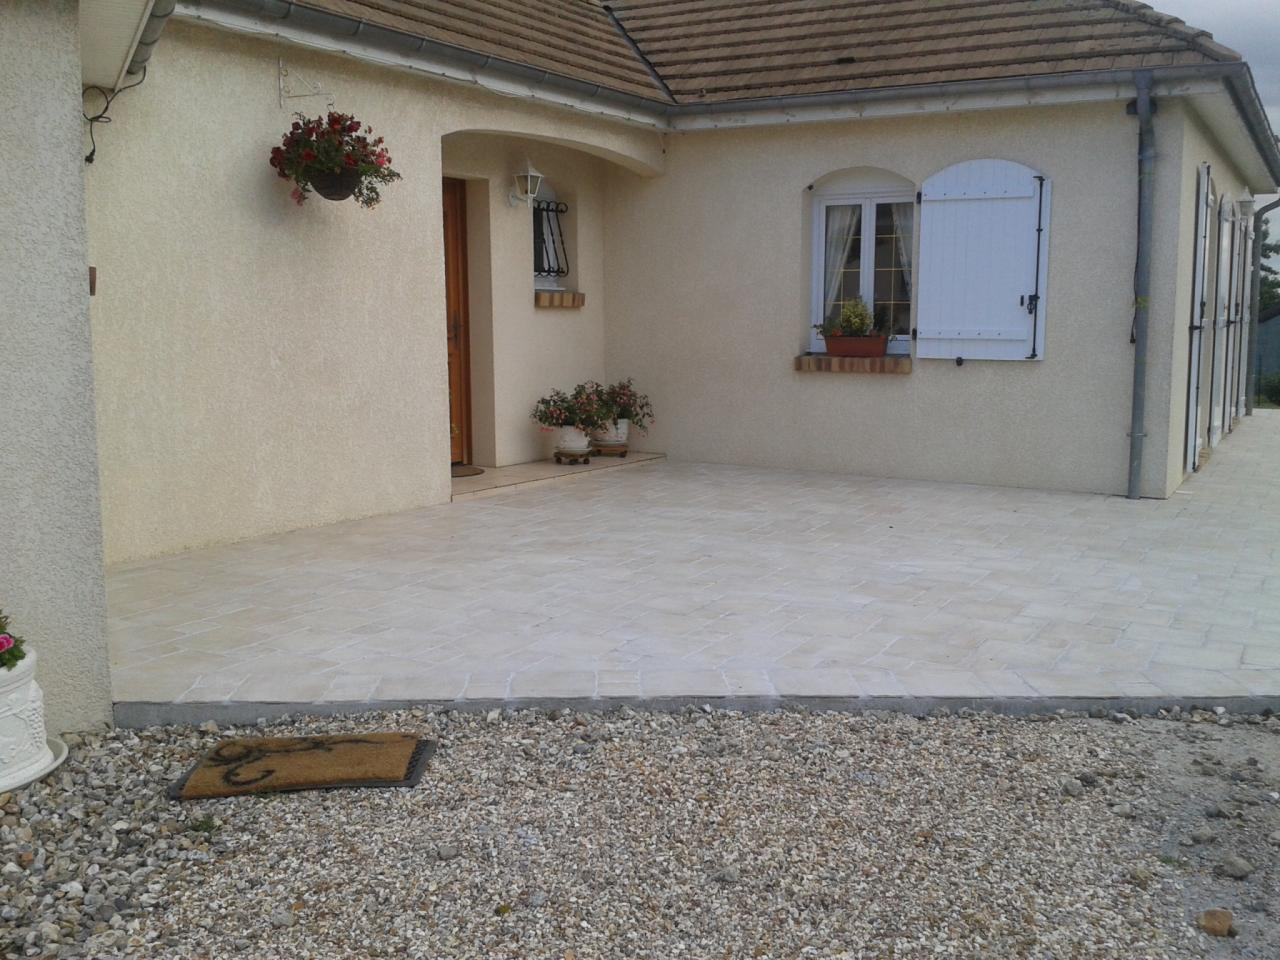 Carrelage ext rieur terrasse all e et trottoir for Carrelage pour terrasse exterieur